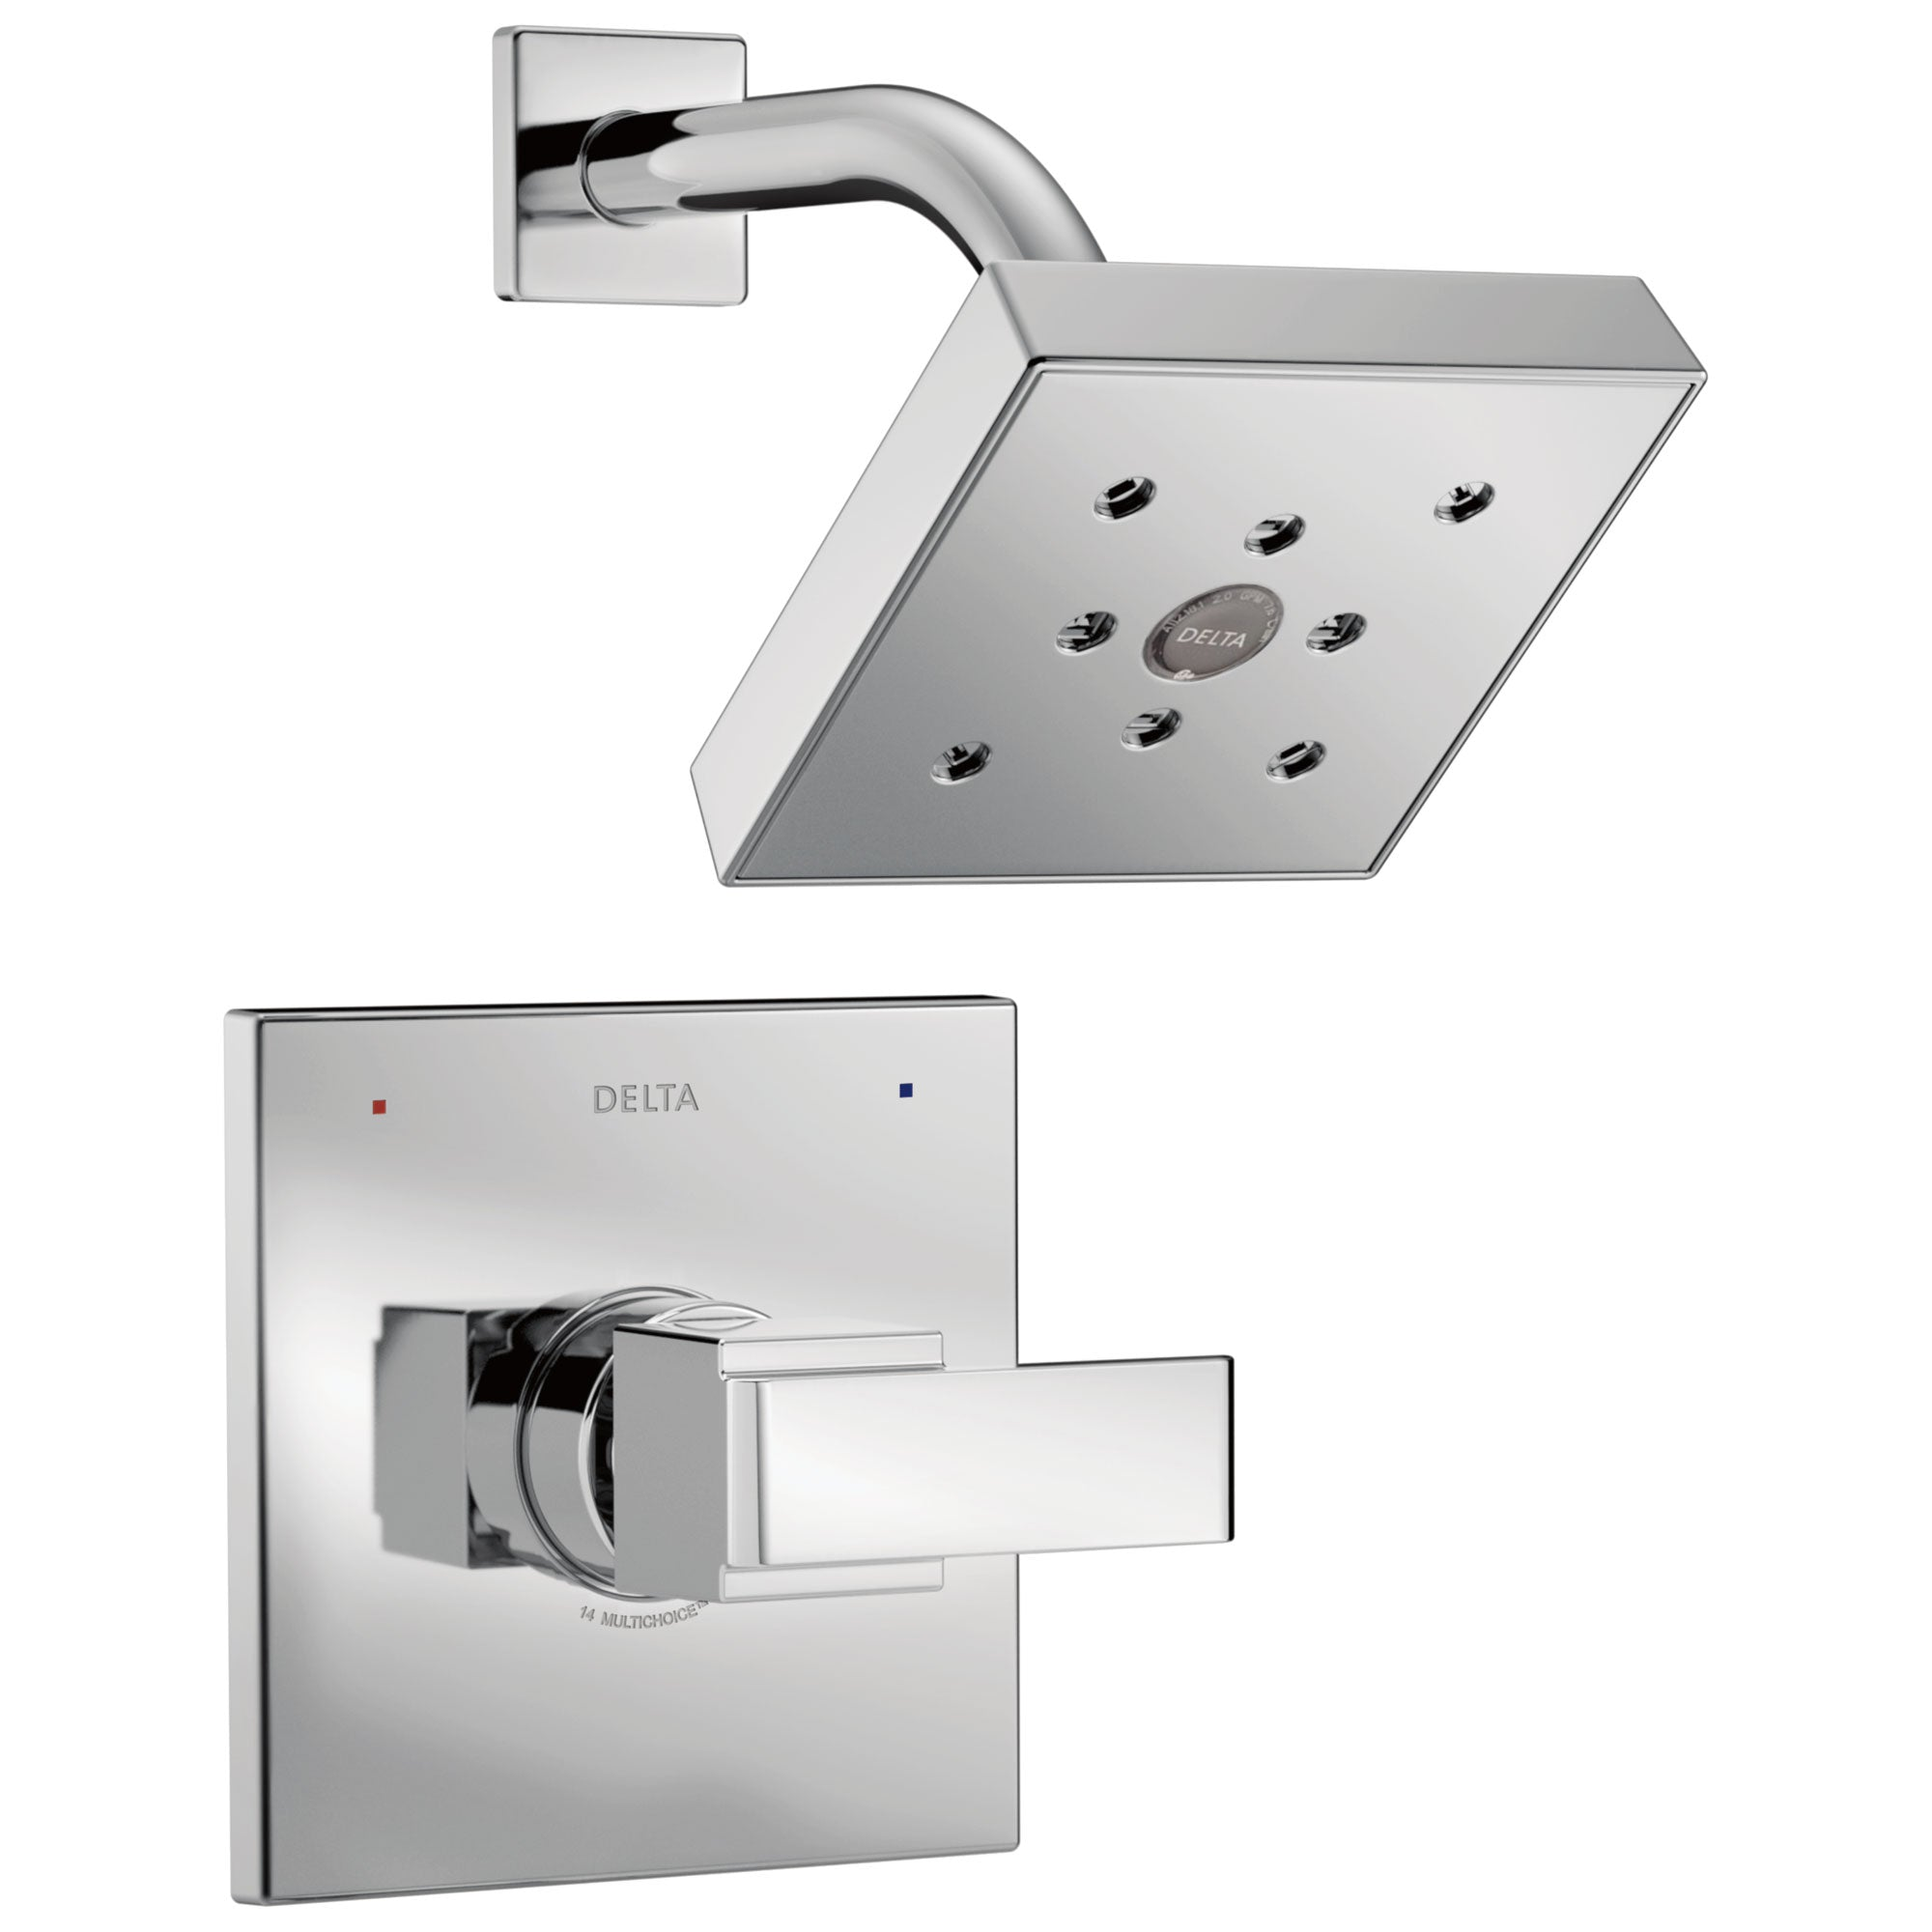 Delta Ara Collection Chrome Monitor 14 Series H2Okinetic Square Showerhead and Modern Single Handle Control Includes Rough-in Valve with Stops D2442V